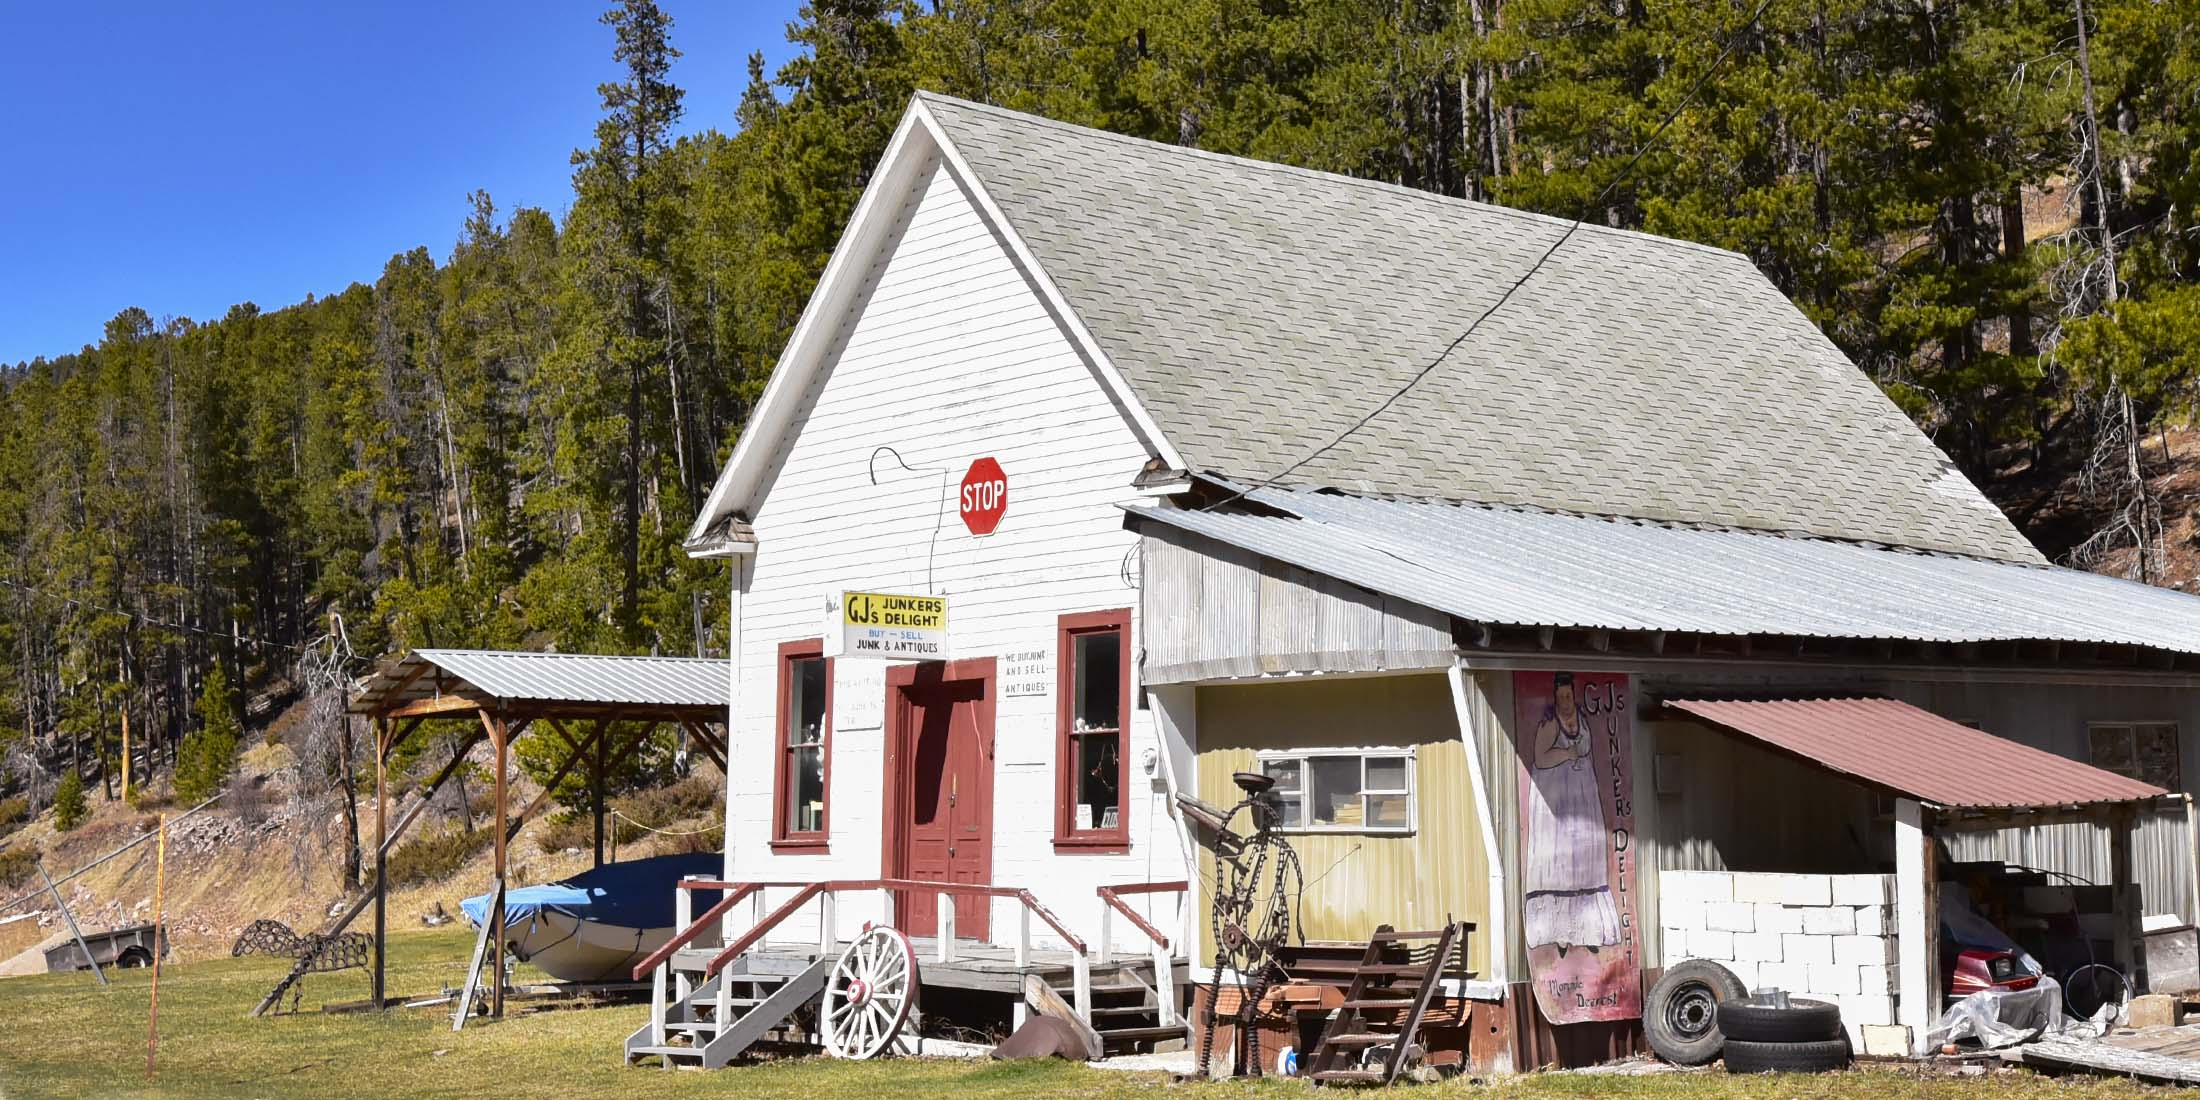 Find all Arts and Culture in the community of Neihart, Montana located in Meagher County on Highway 89.